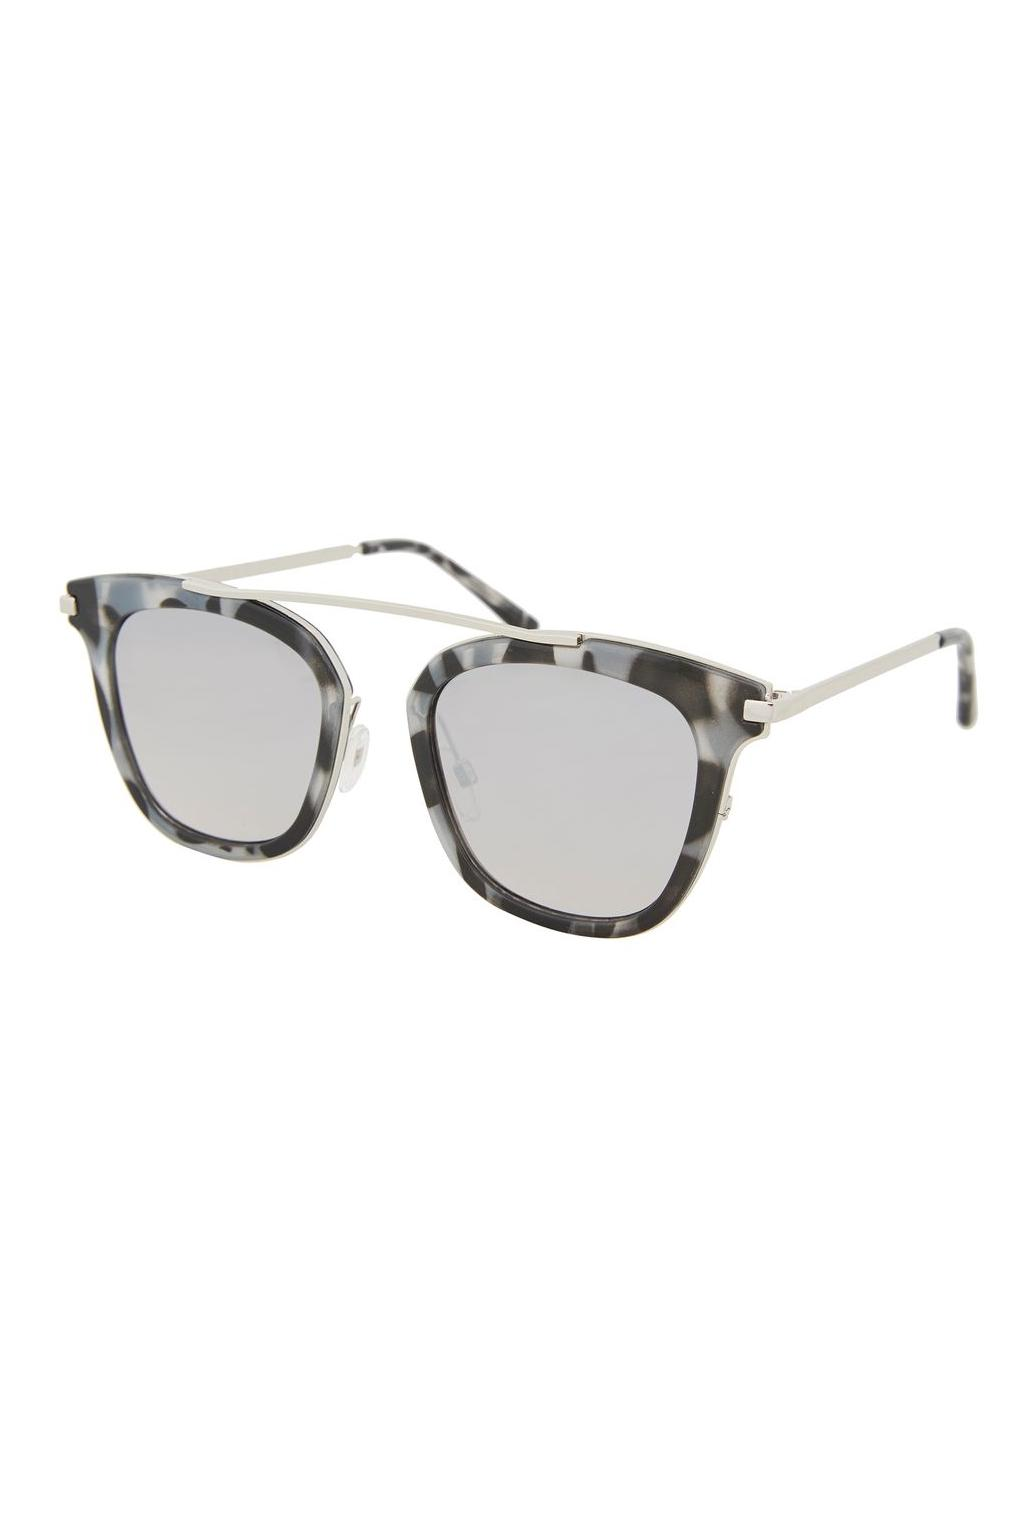 WEBB Brow Bar Square Sunglasses_top shop_27,40